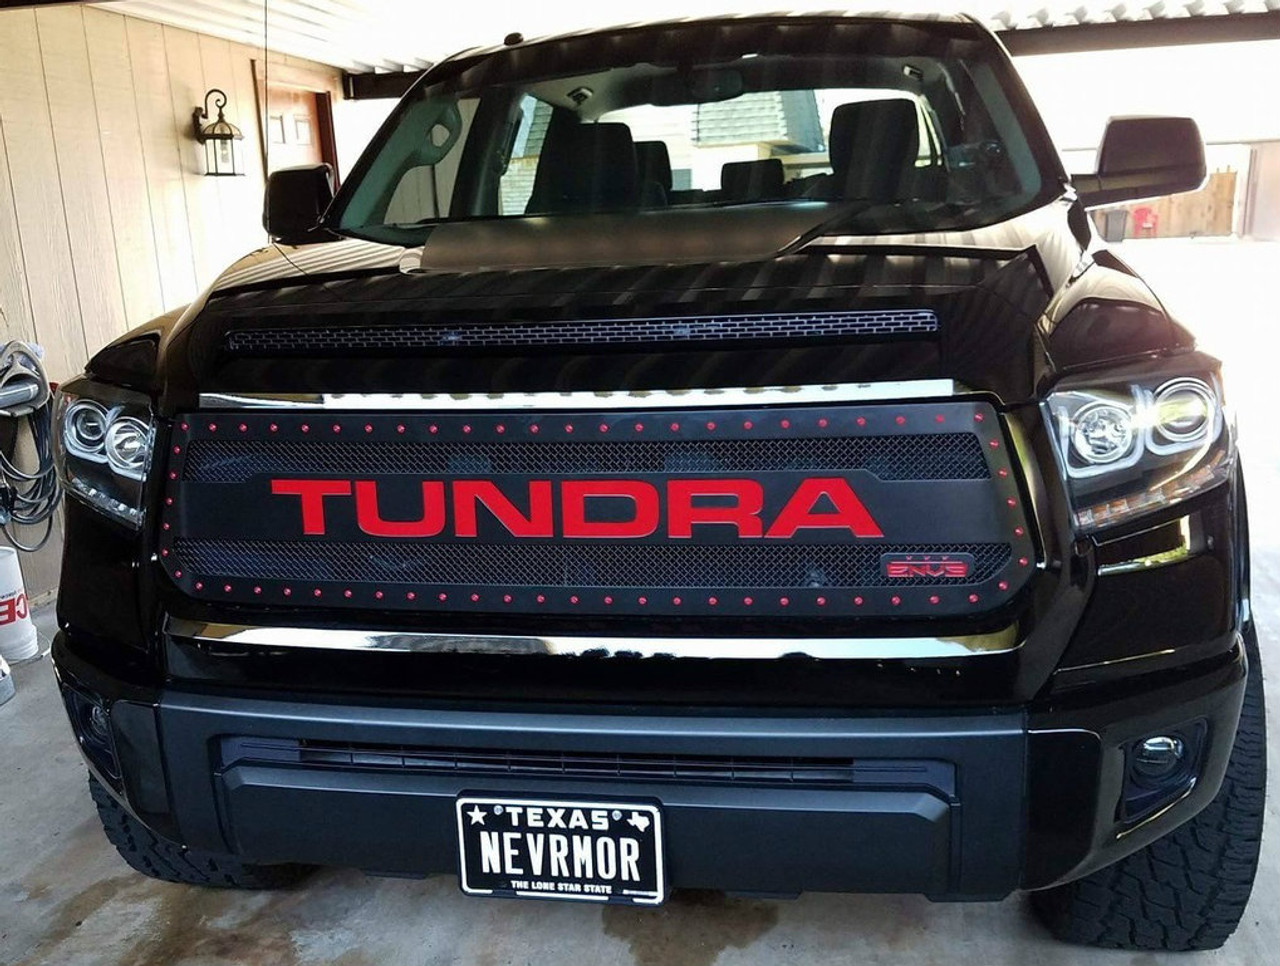 2014 Toyota Tundra Pricing Announced, Starts at $26,915 Photo ...